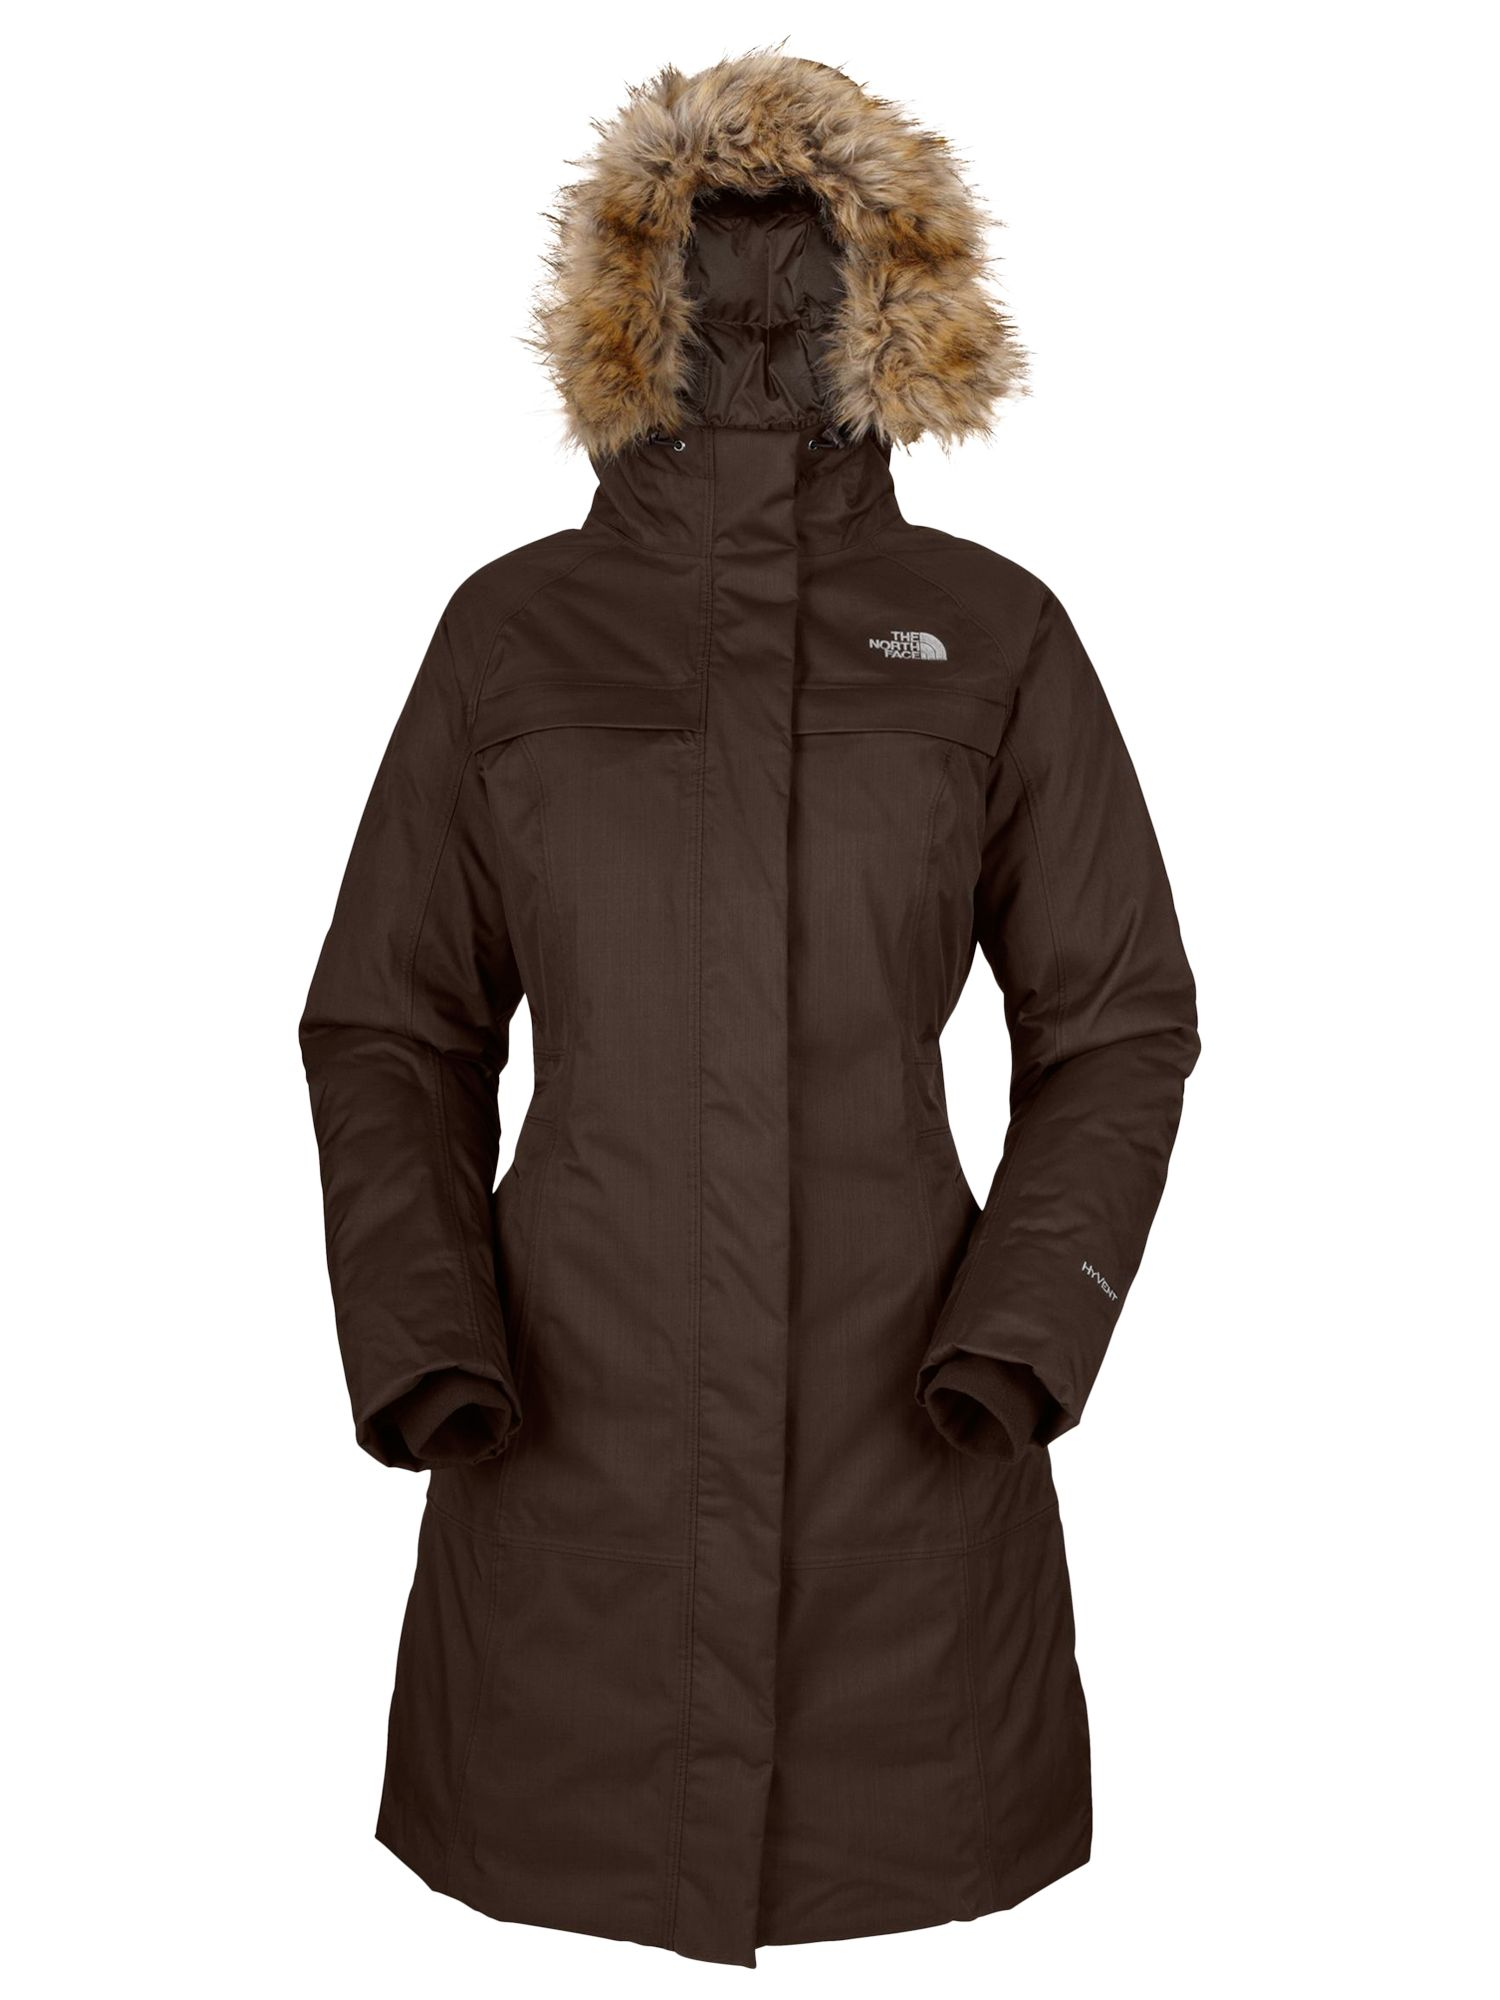 The North Face Arctic Parka, Bittersweet Brown